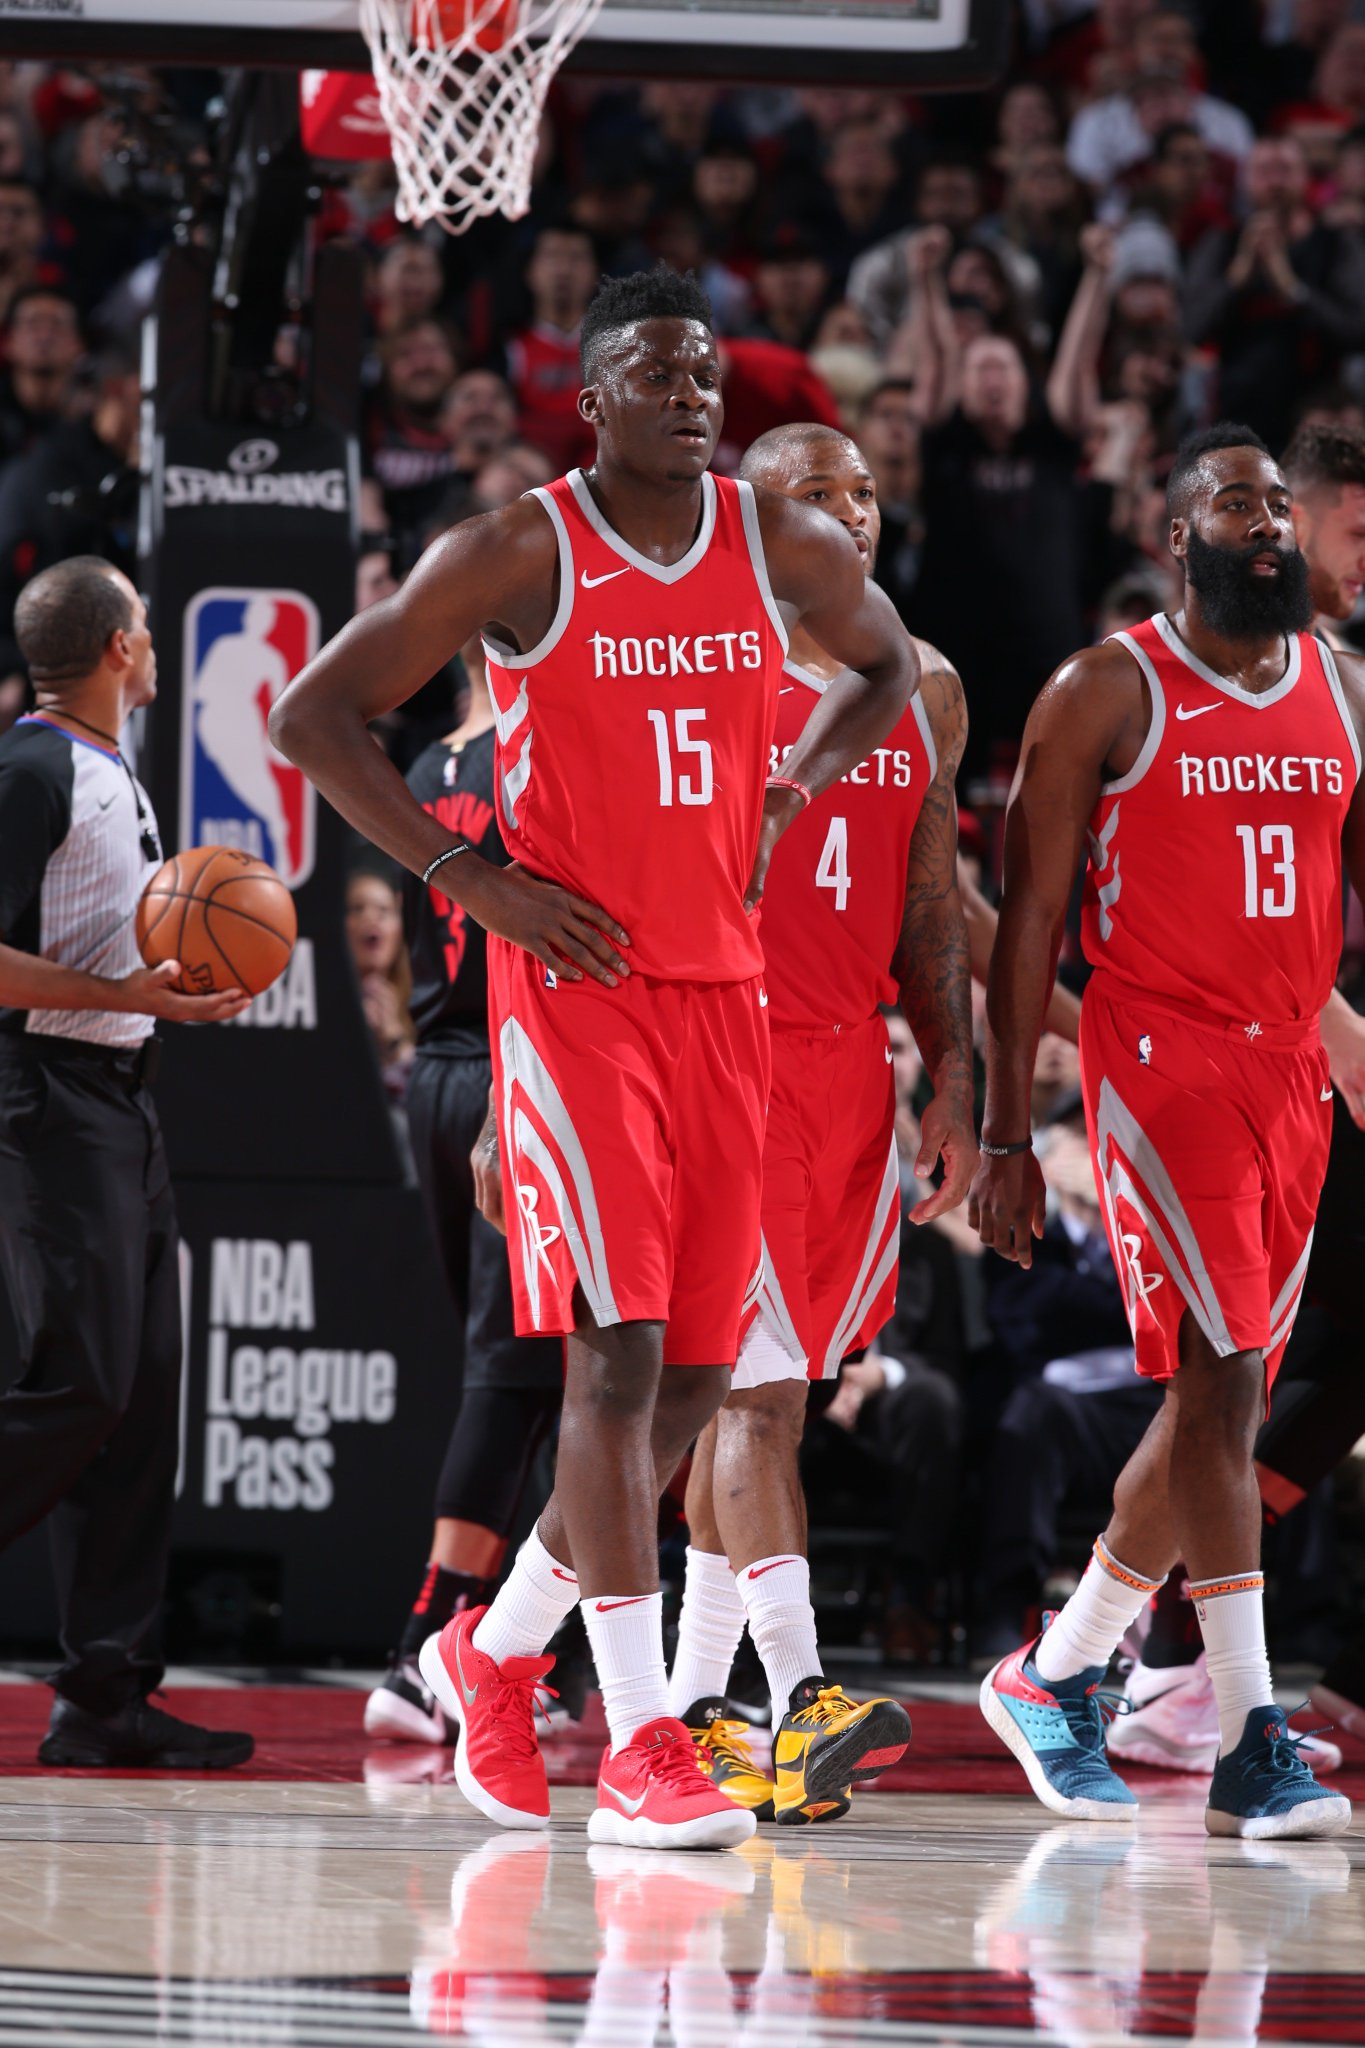 Squad is battling in Portland! ��  Rockets up 104-100 with 4:04 left. https://t.co/3nbxyAA403